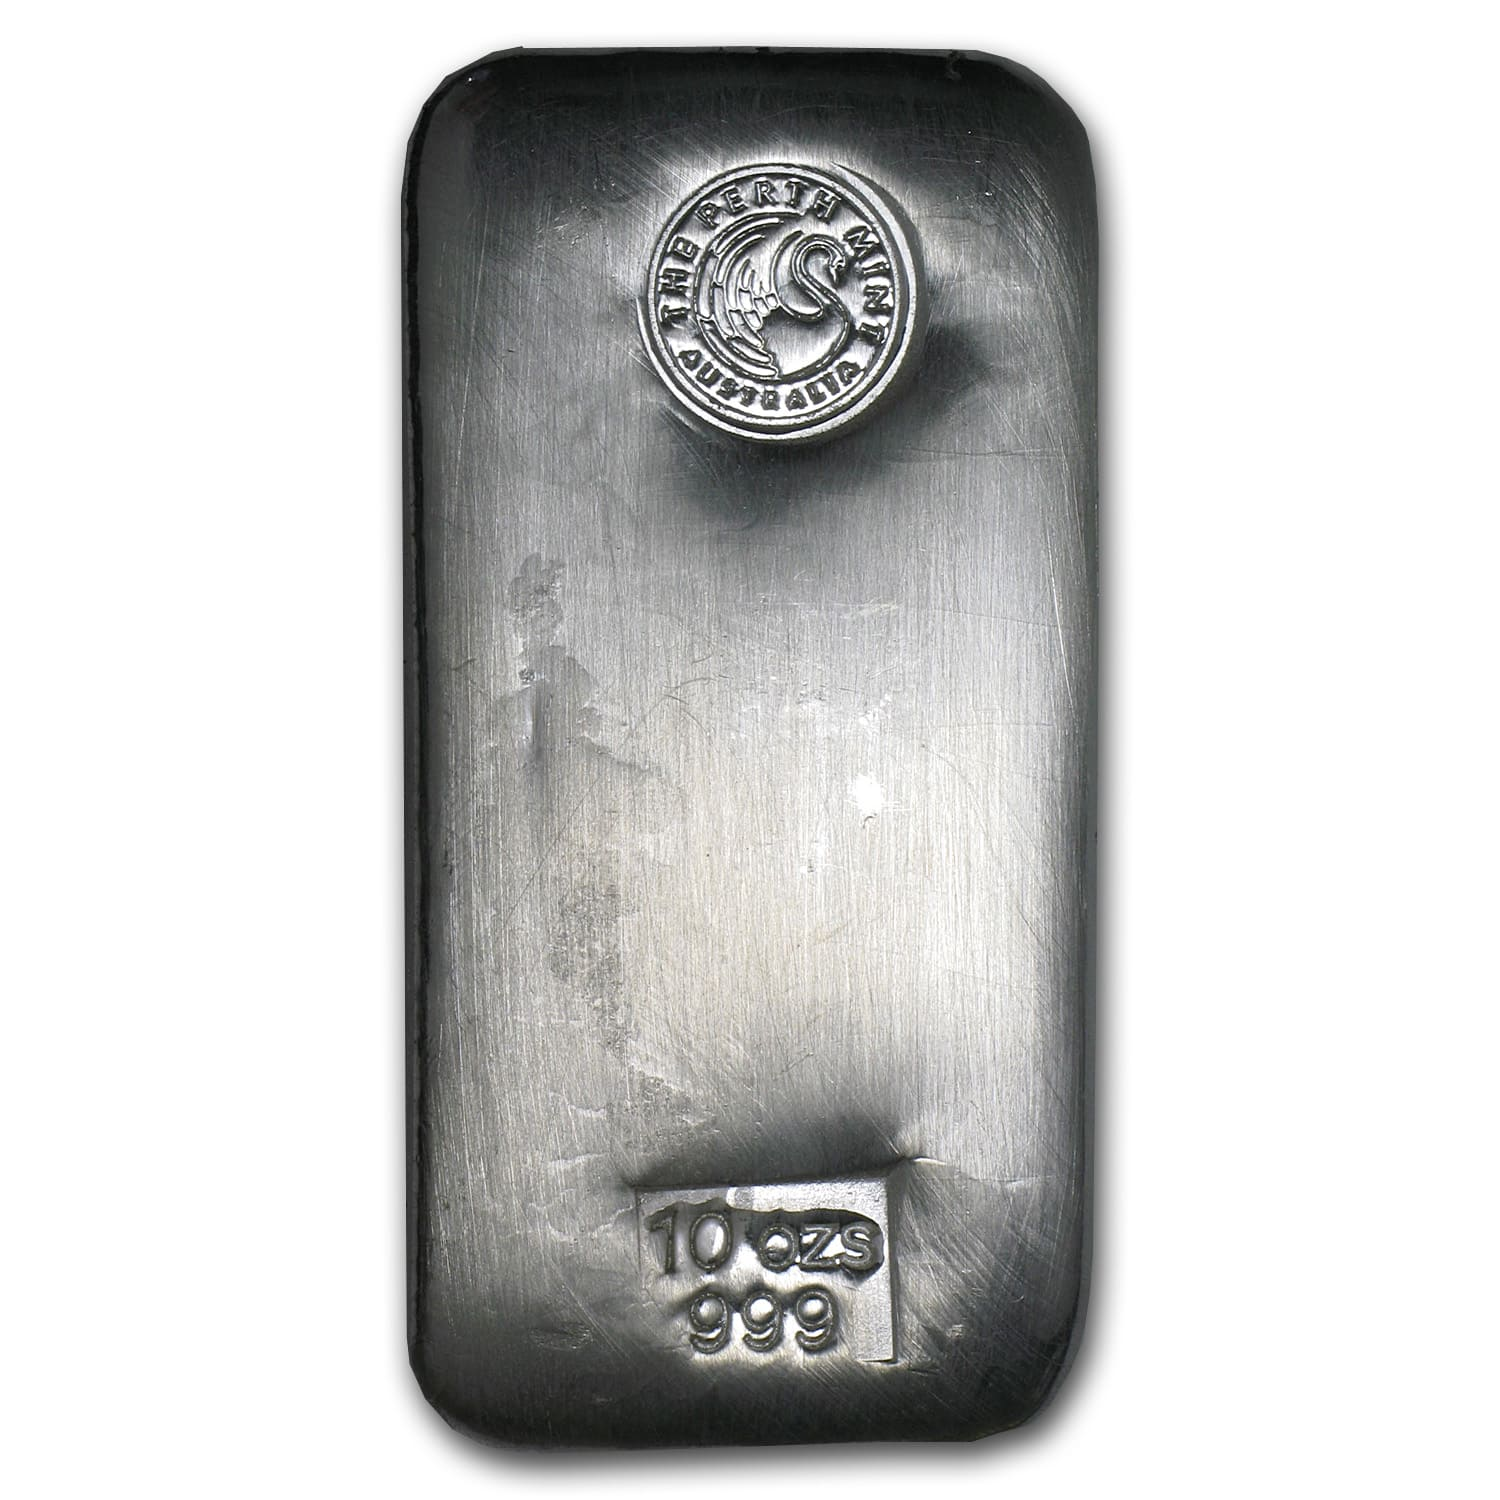 10 oz Silver Bars - Perth Mint